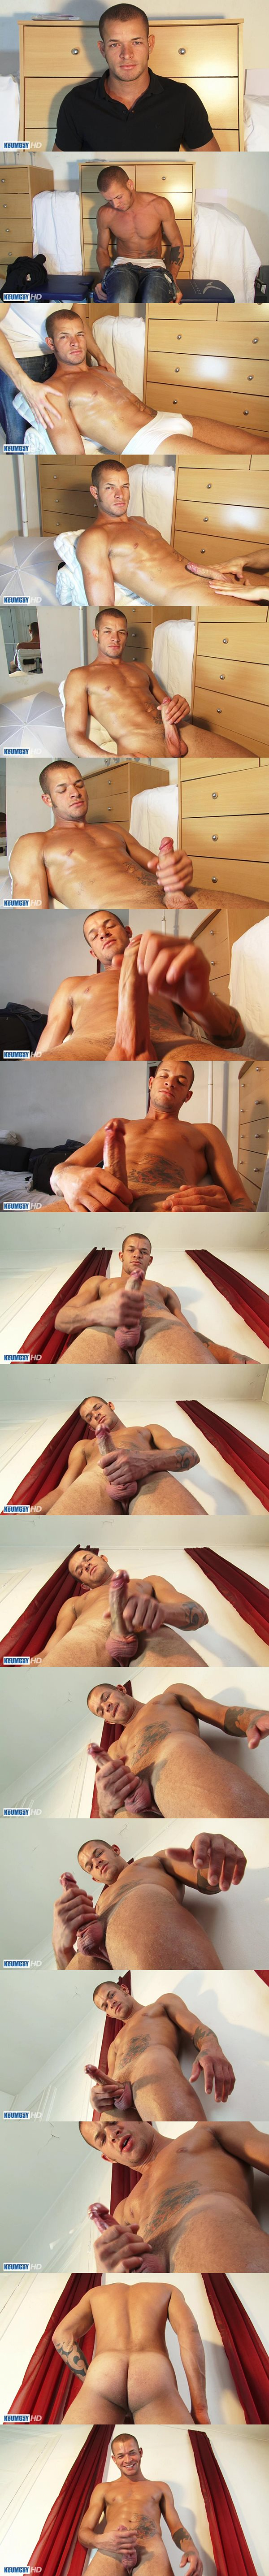 Masculine Brazilian straight hunk Marlon gets massaged before he strokes the cum out of his hard boner at Keumgay